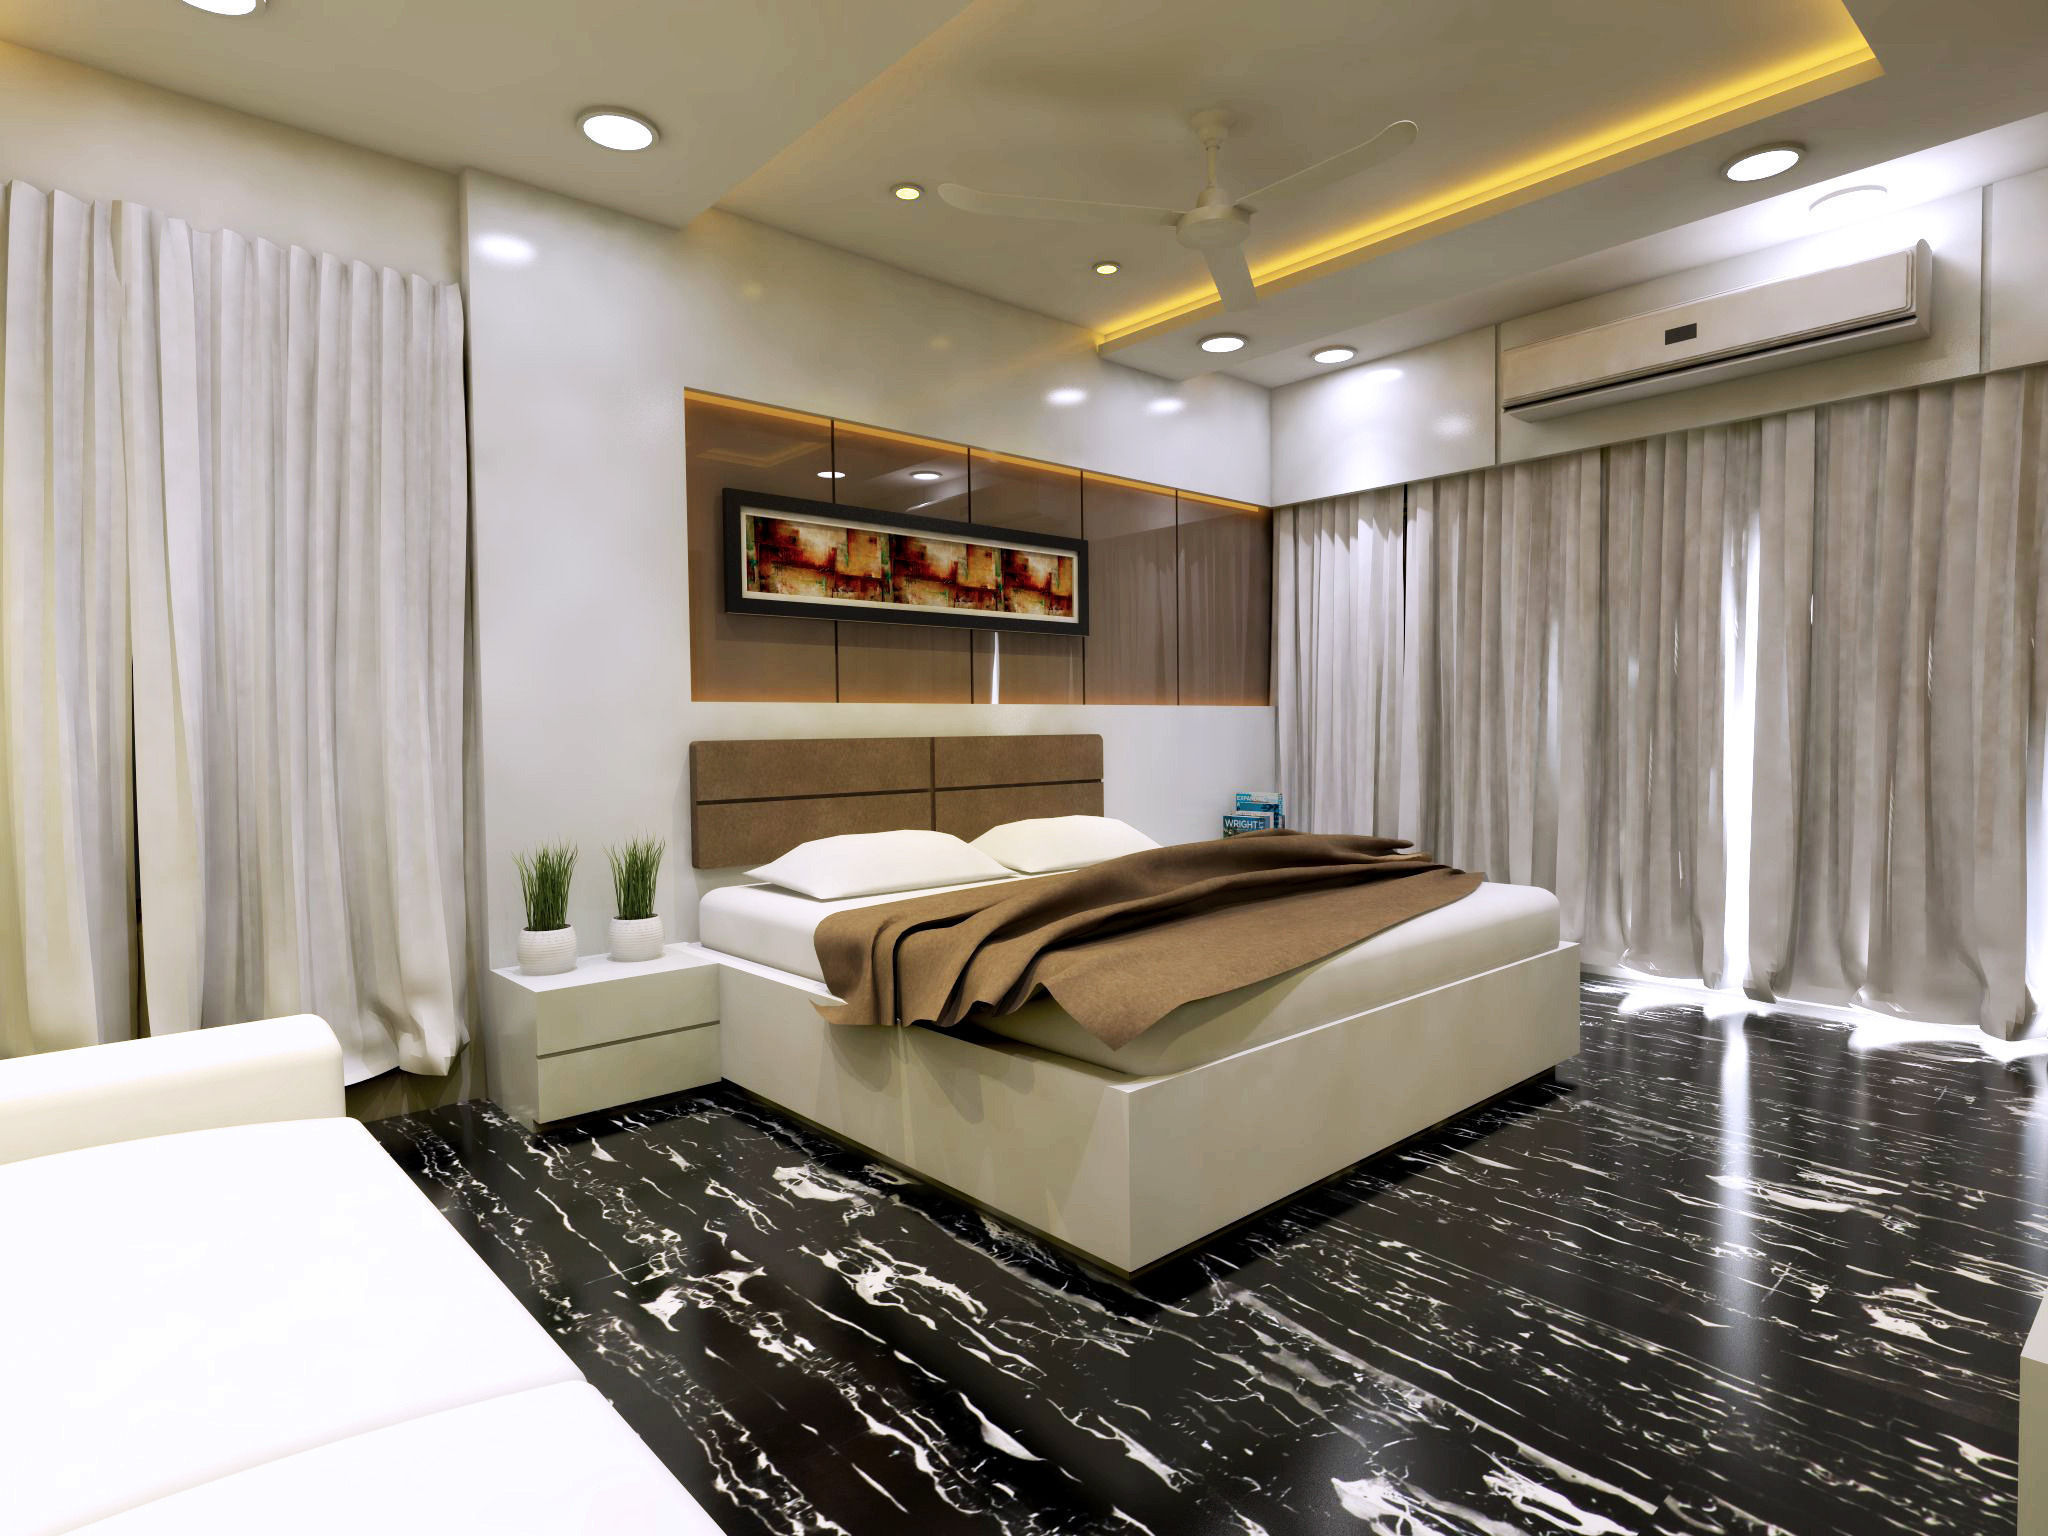 Ordinaire Modern Bedroom Interior Vray Rendered 3d Model Skp 1 ...